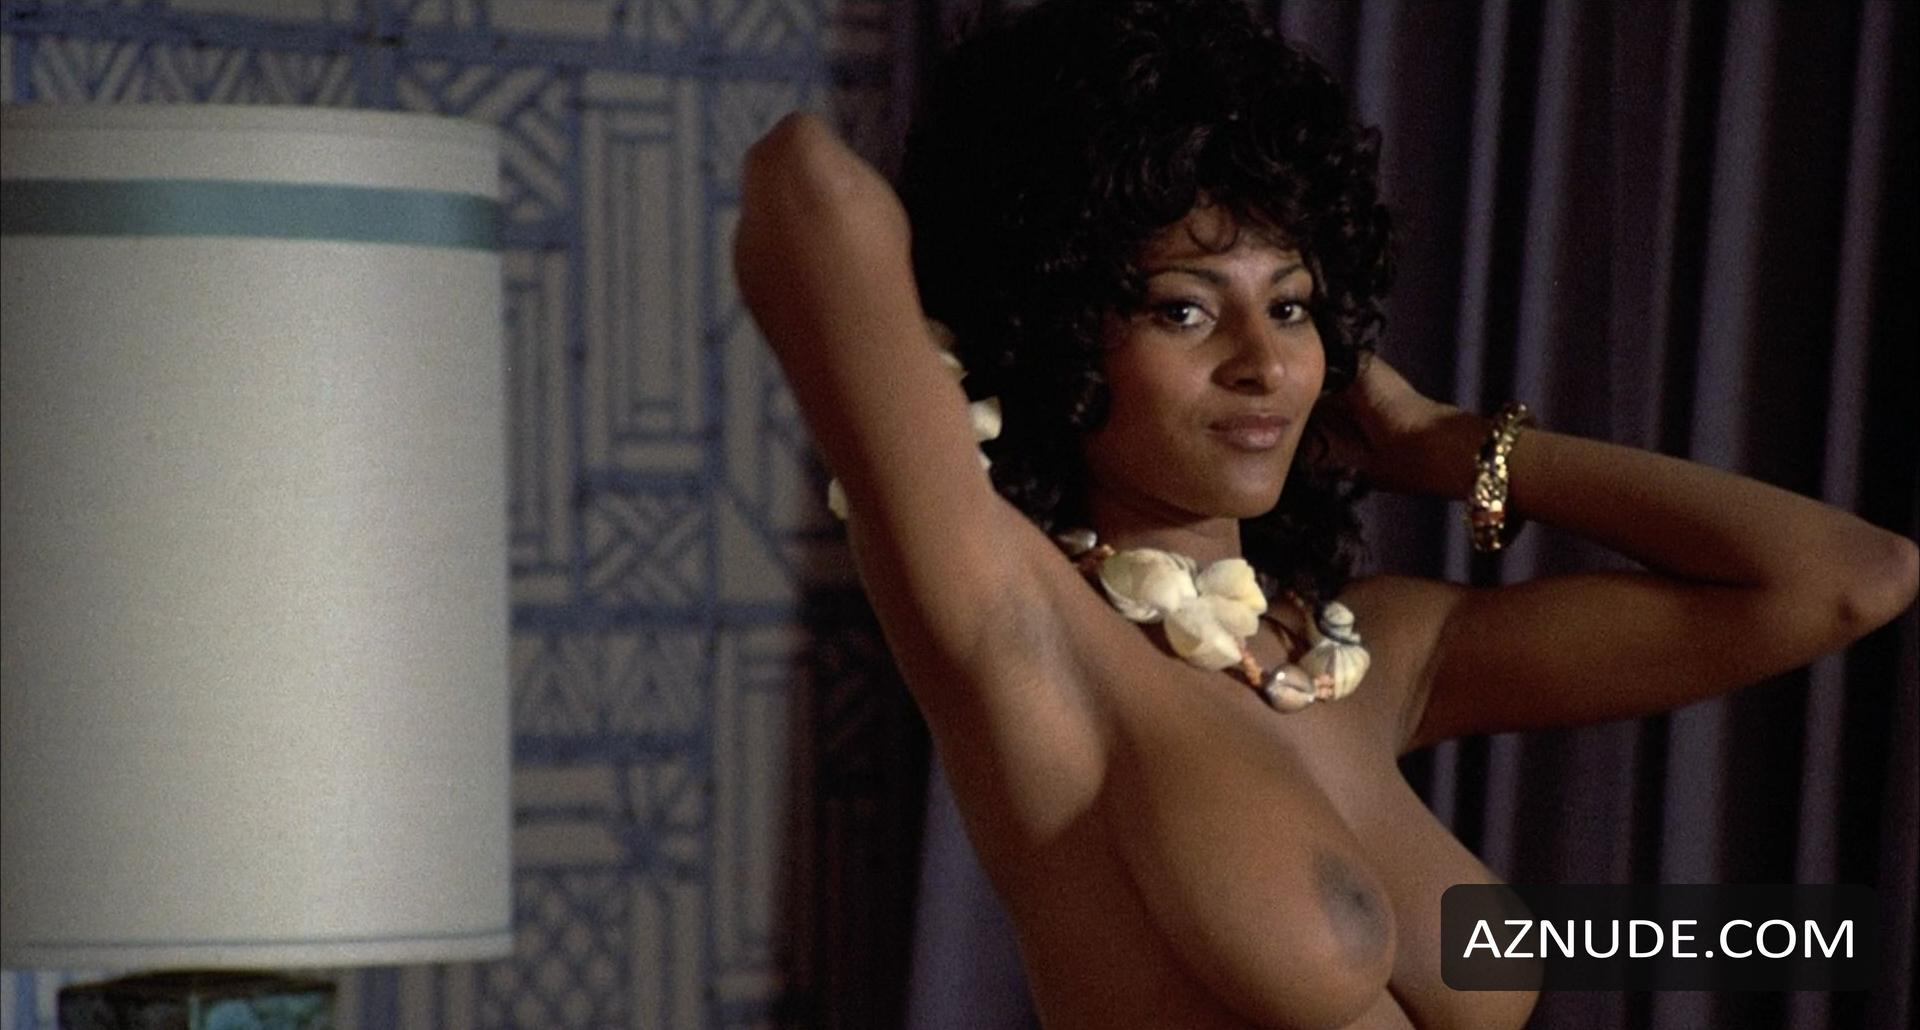 Pam Grier Breasts, Butt Scene in Coffy - AZNude